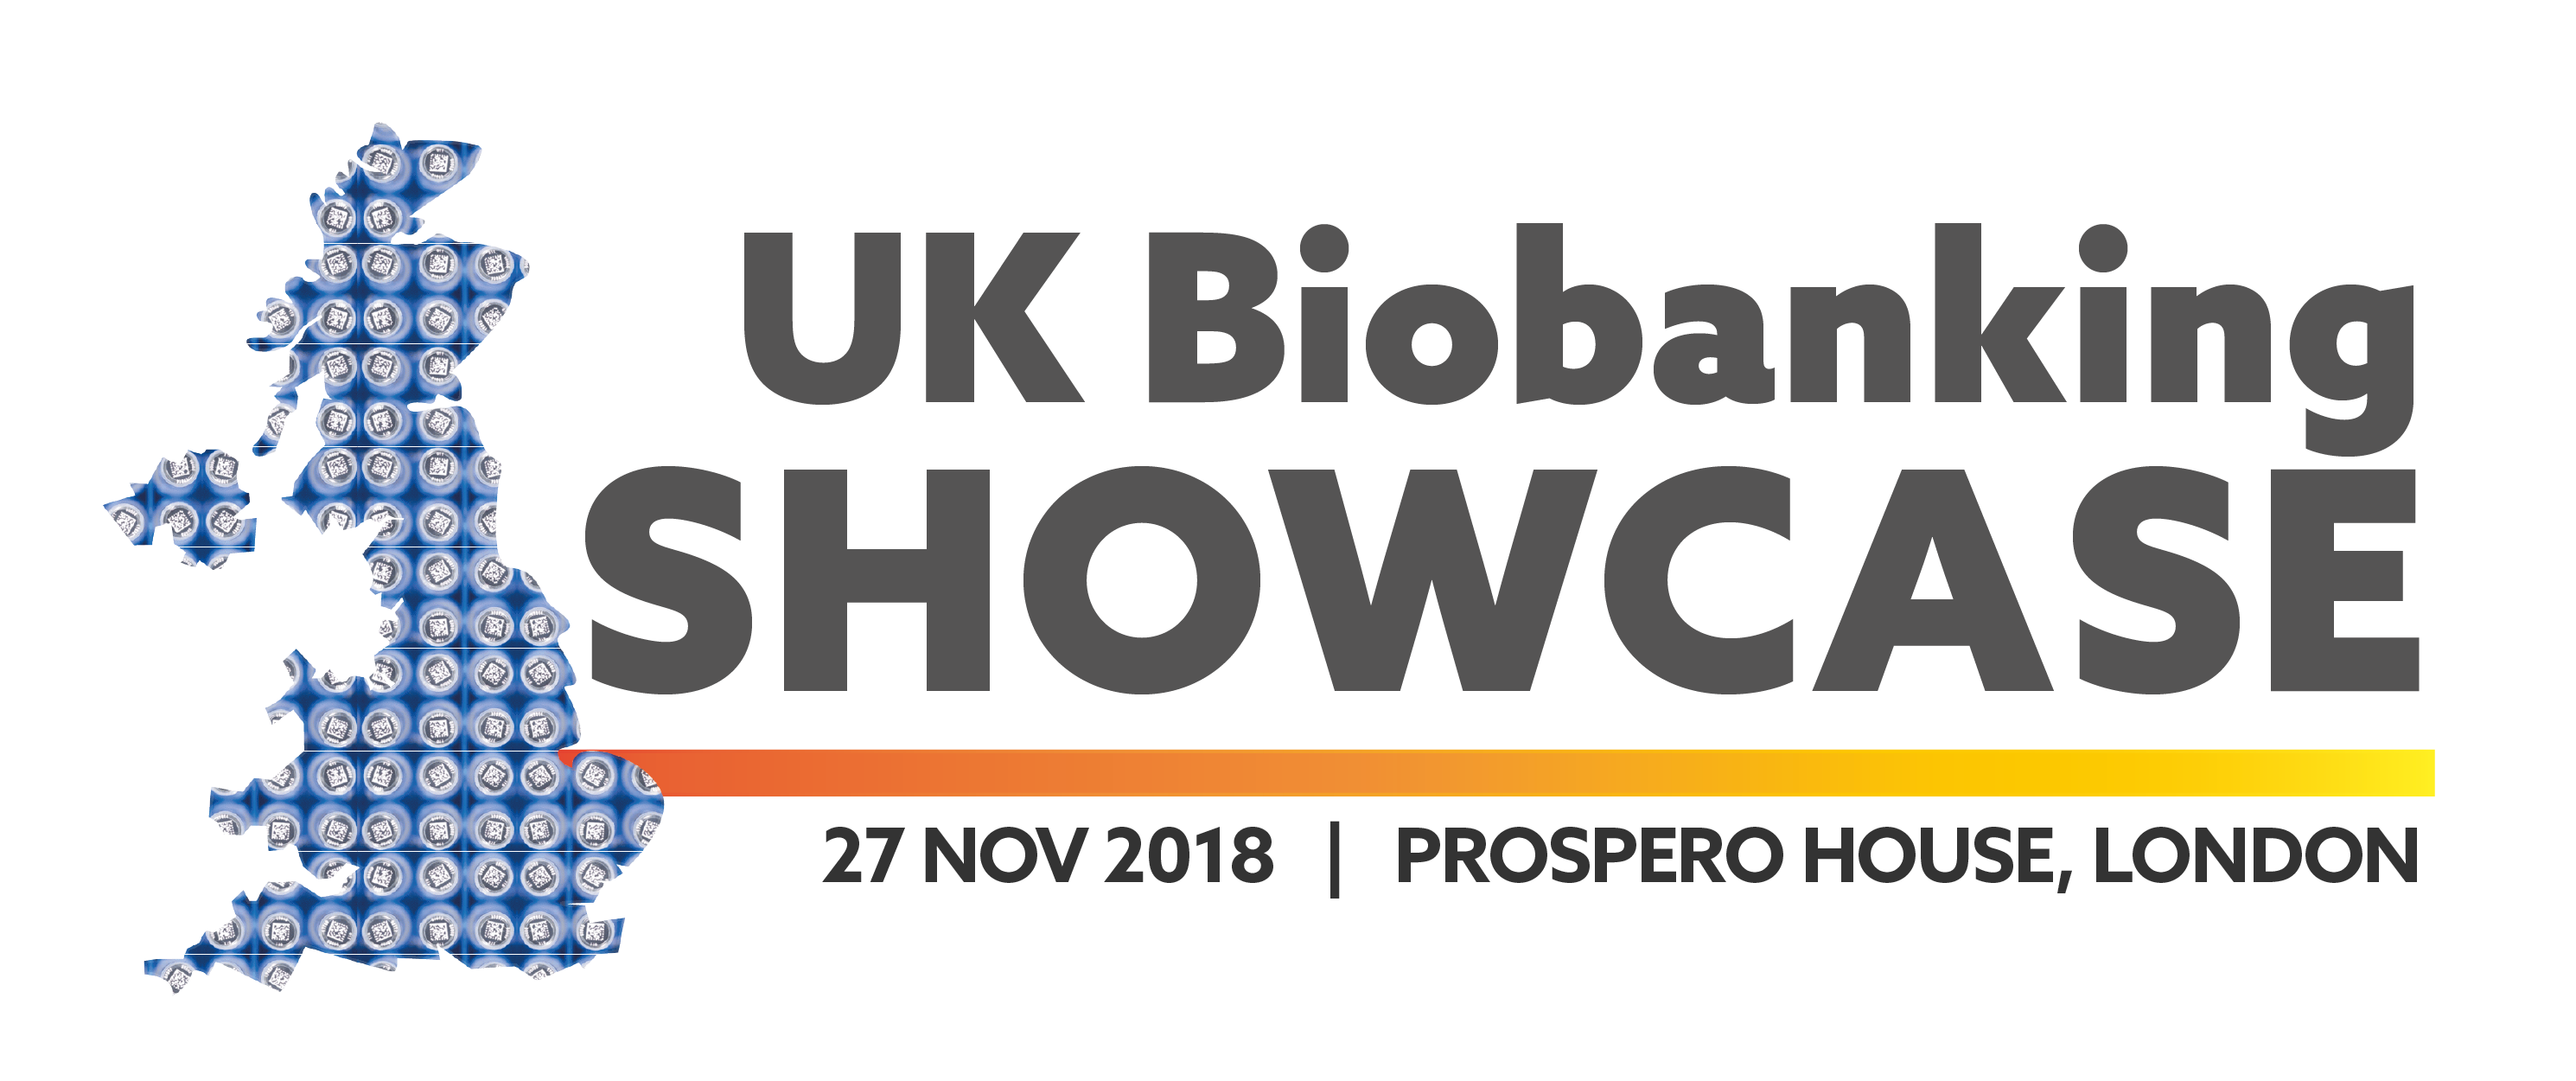 Text of Biobanking Showcase including date and venue, with map of the UK